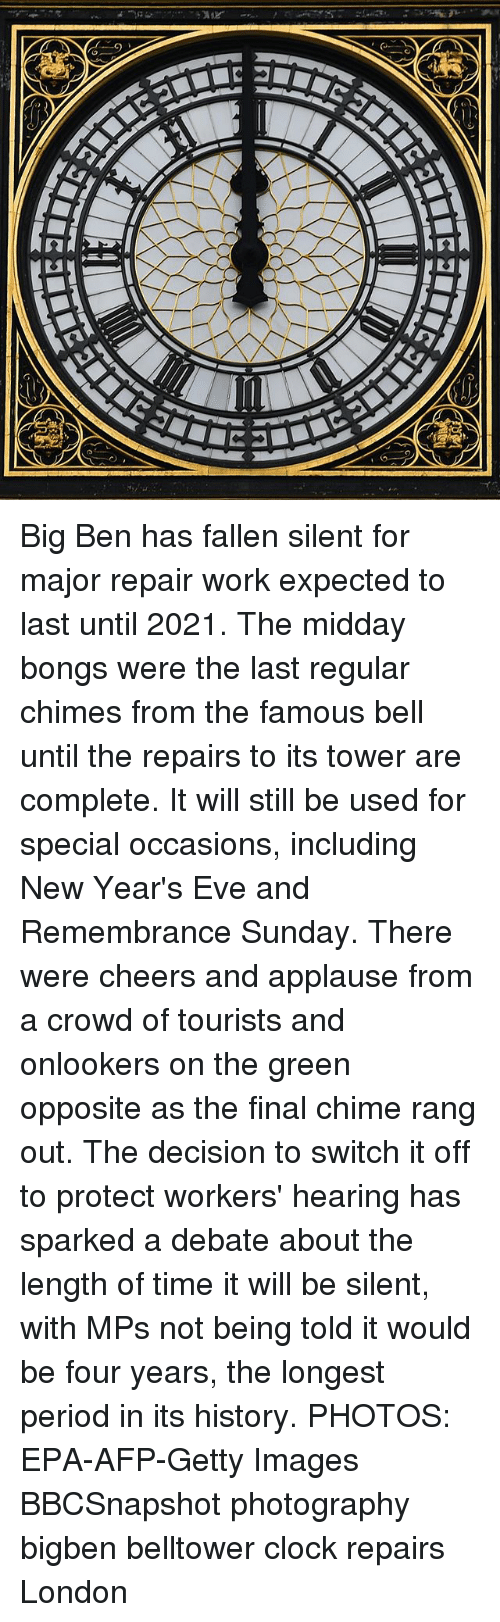 epa: Big Ben has fallen silent for major repair work expected to last until 2021. The midday bongs were the last regular chimes from the famous bell until the repairs to its tower are complete. It will still be used for special occasions, including New Year's Eve and Remembrance Sunday. There were cheers and applause from a crowd of tourists and onlookers on the green opposite as the final chime rang out. The decision to switch it off to protect workers' hearing has sparked a debate about the length of time it will be silent, with MPs not being told it would be four years, the longest period in its history. PHOTOS: EPA-AFP-Getty Images BBCSnapshot photography bigben belltower clock repairs London